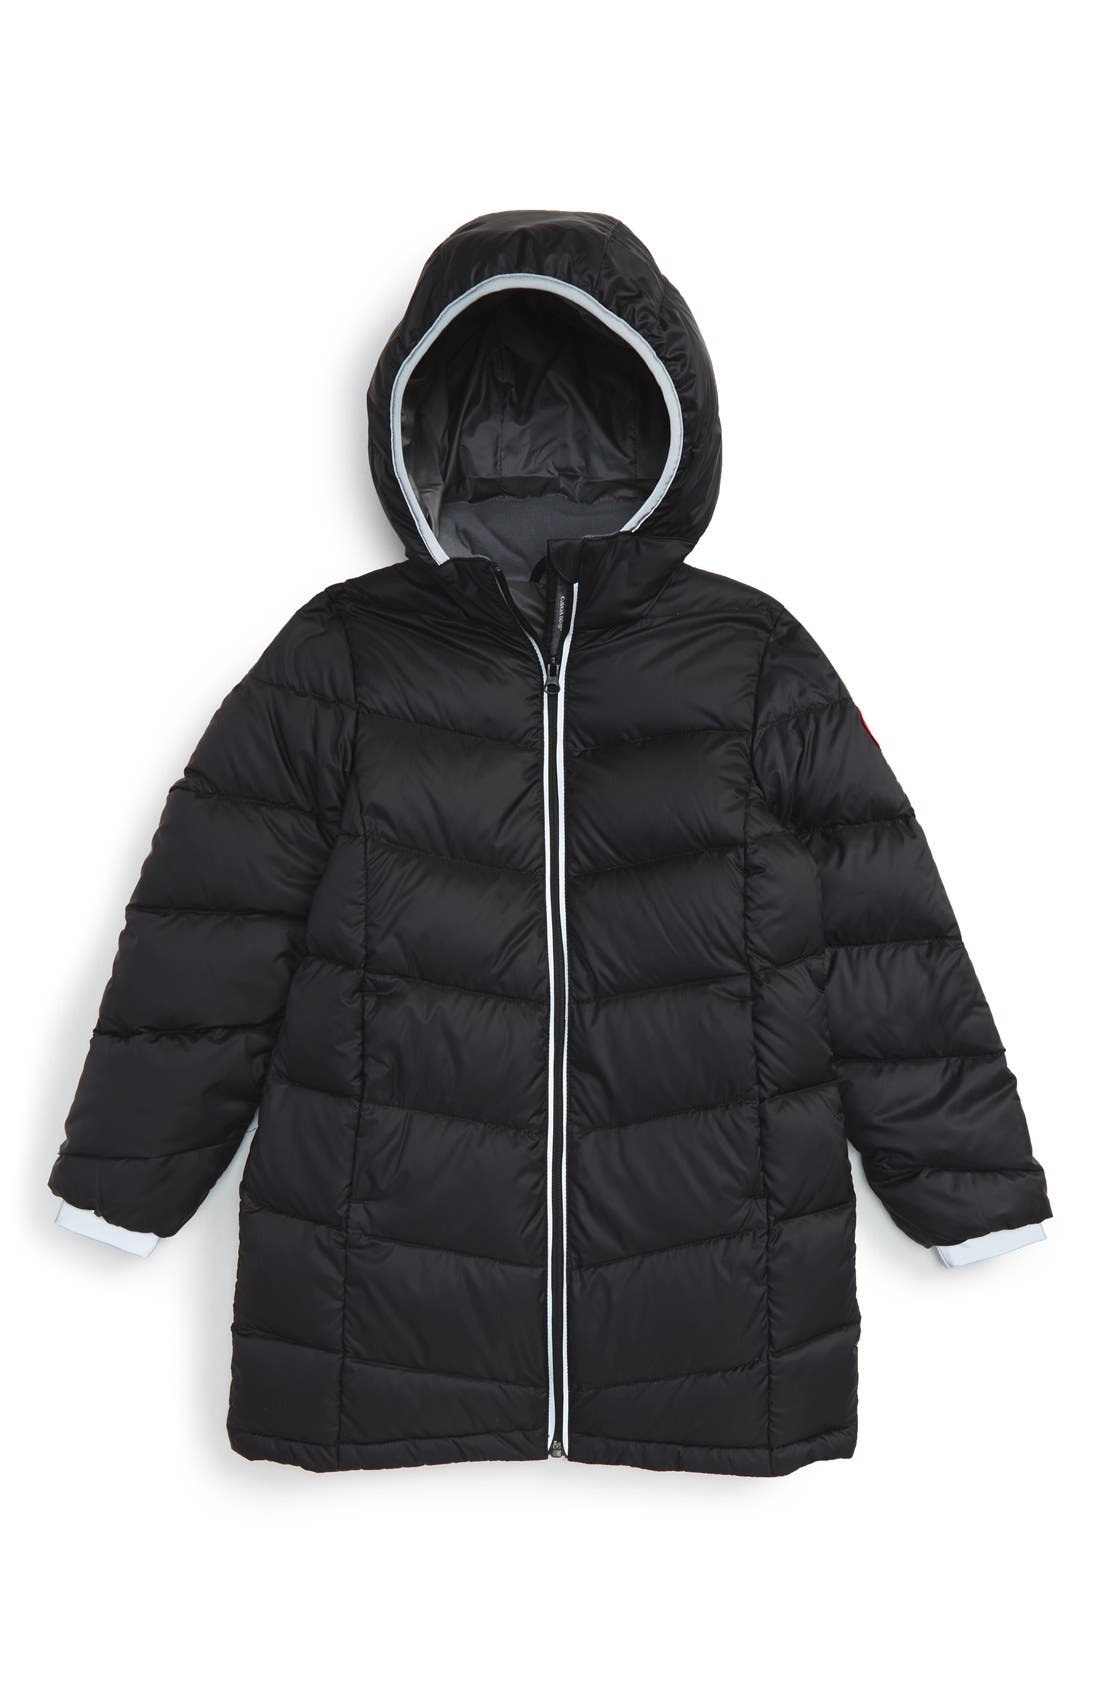 'Madeline' Hooded Down Jacket,                             Main thumbnail 1, color,                             Black